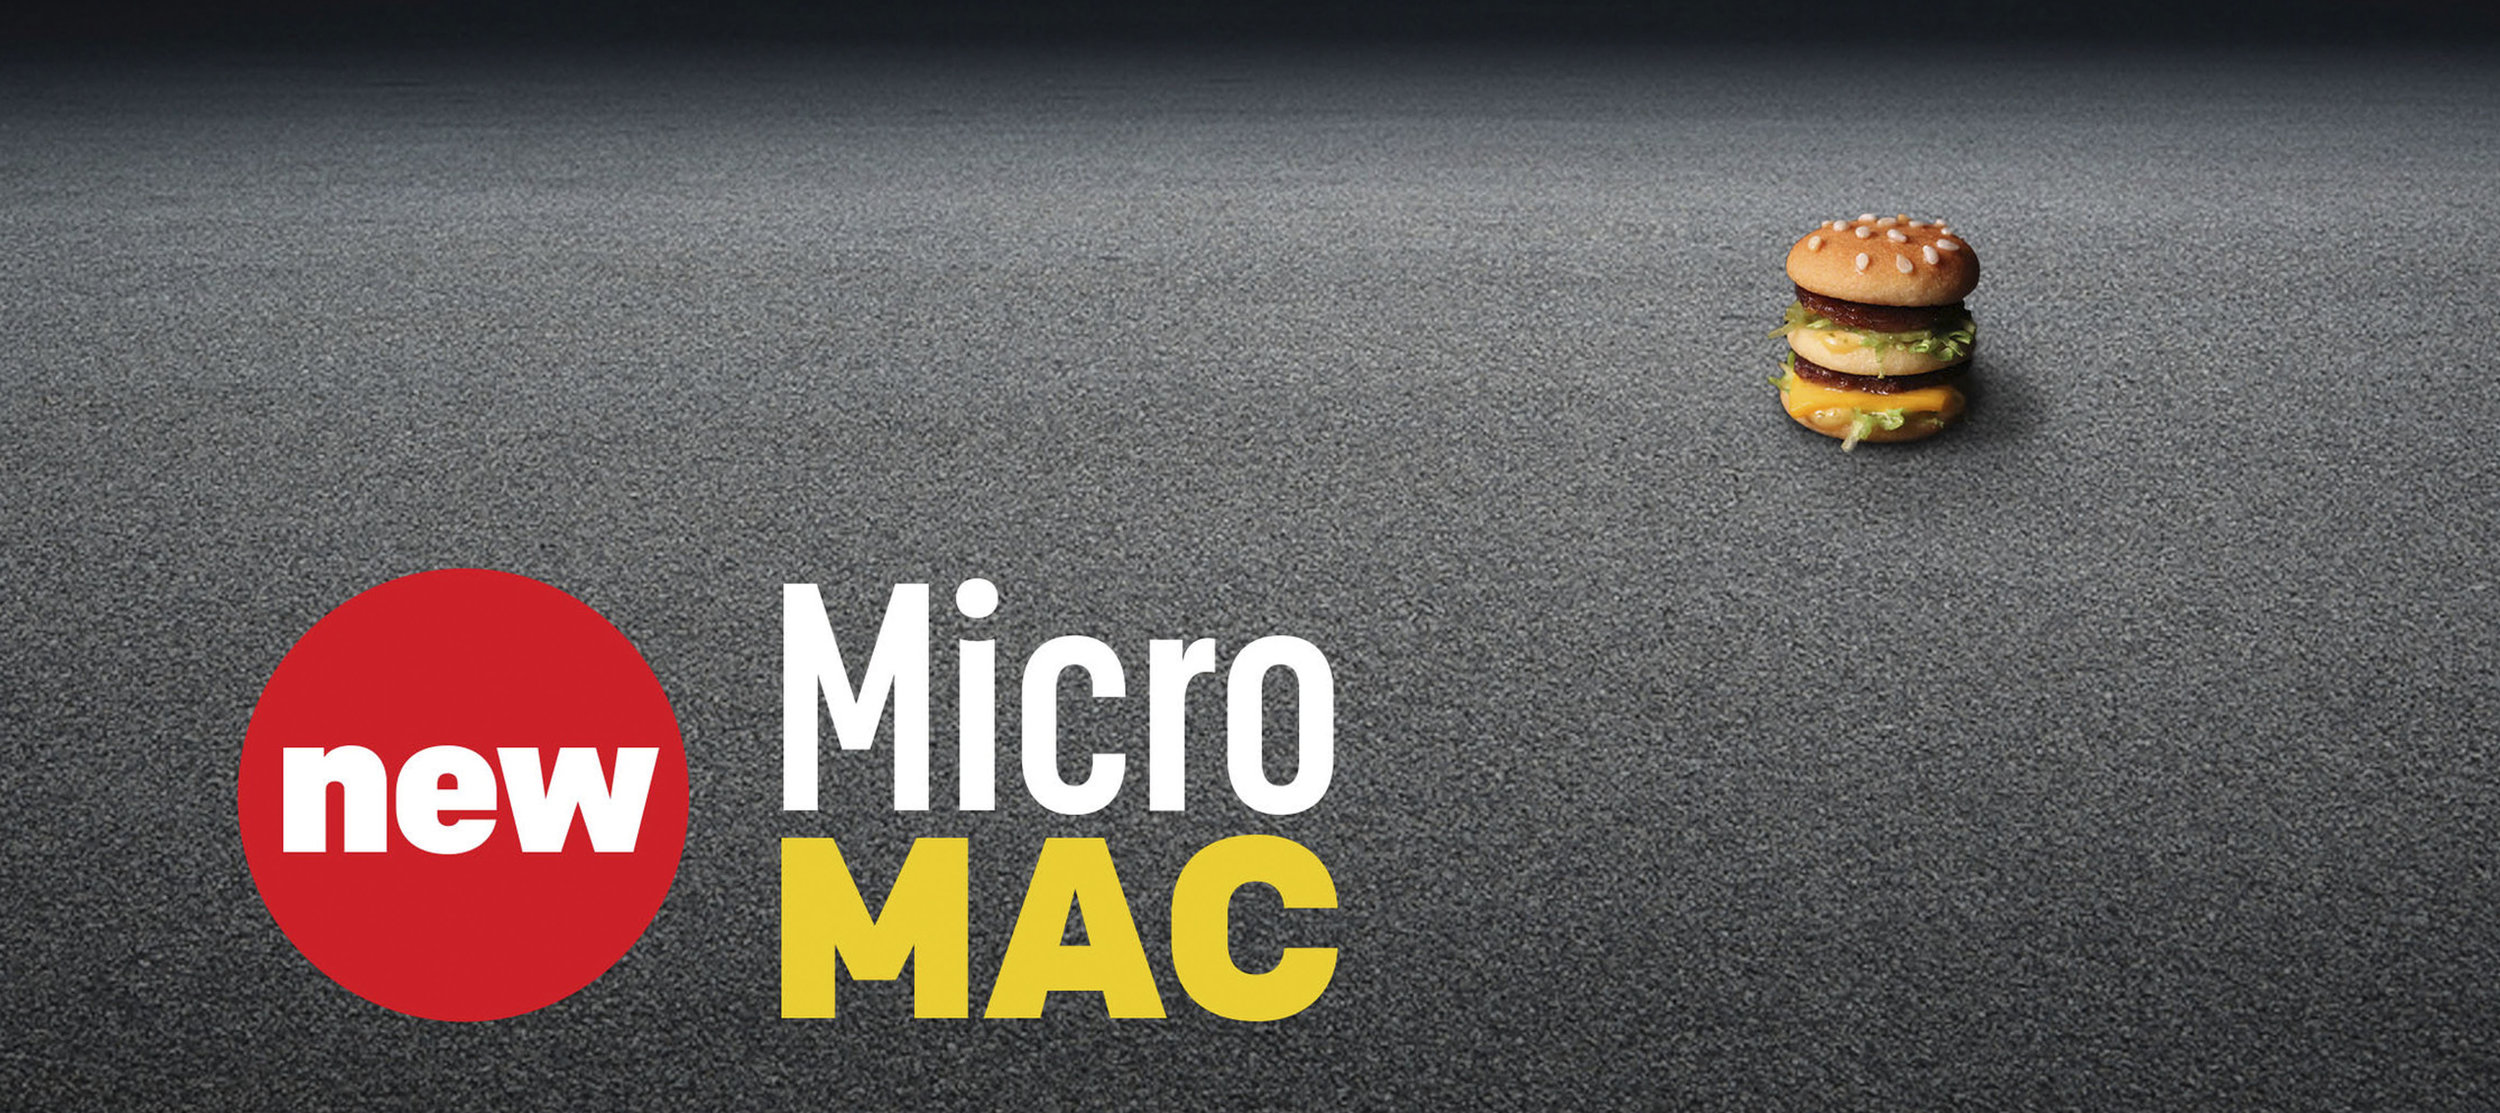 m606_headers_micromac.jpg